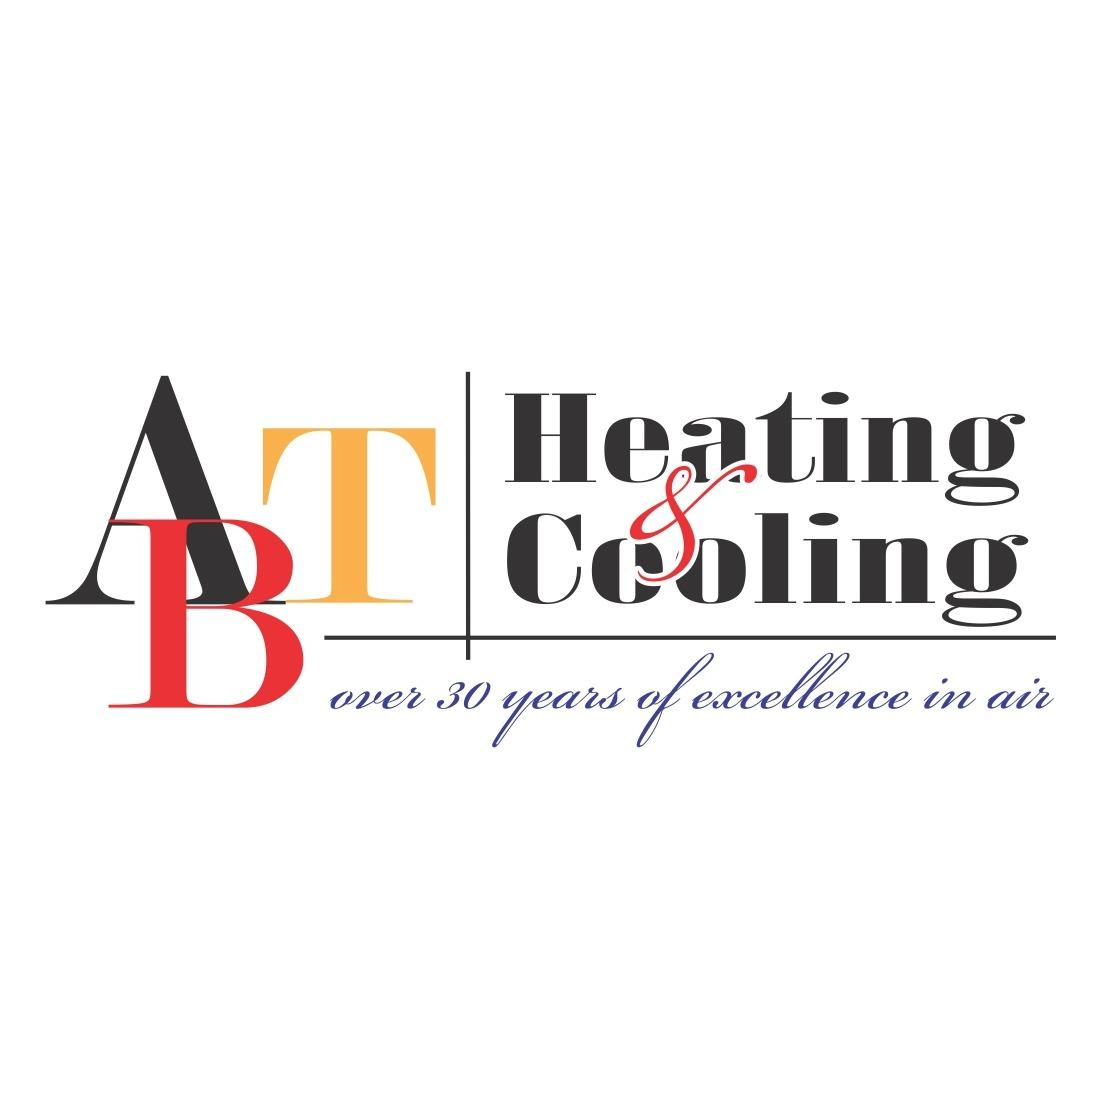 ABT Heating and Cooling